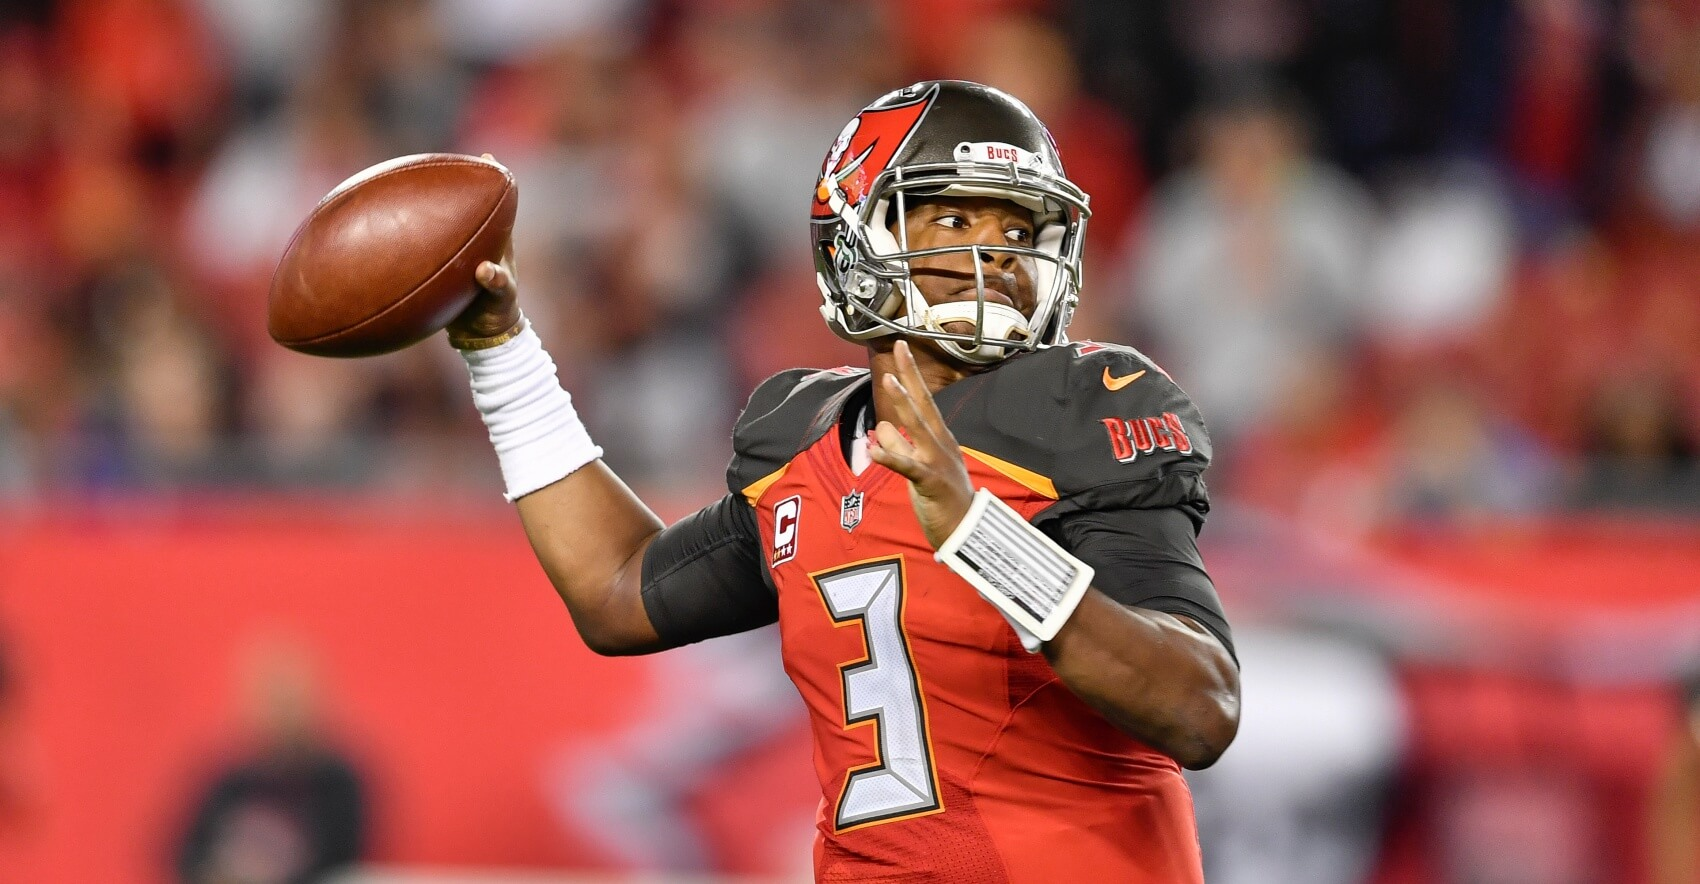 Fantasy Football: Early QB Rankings for 2019 Part 2